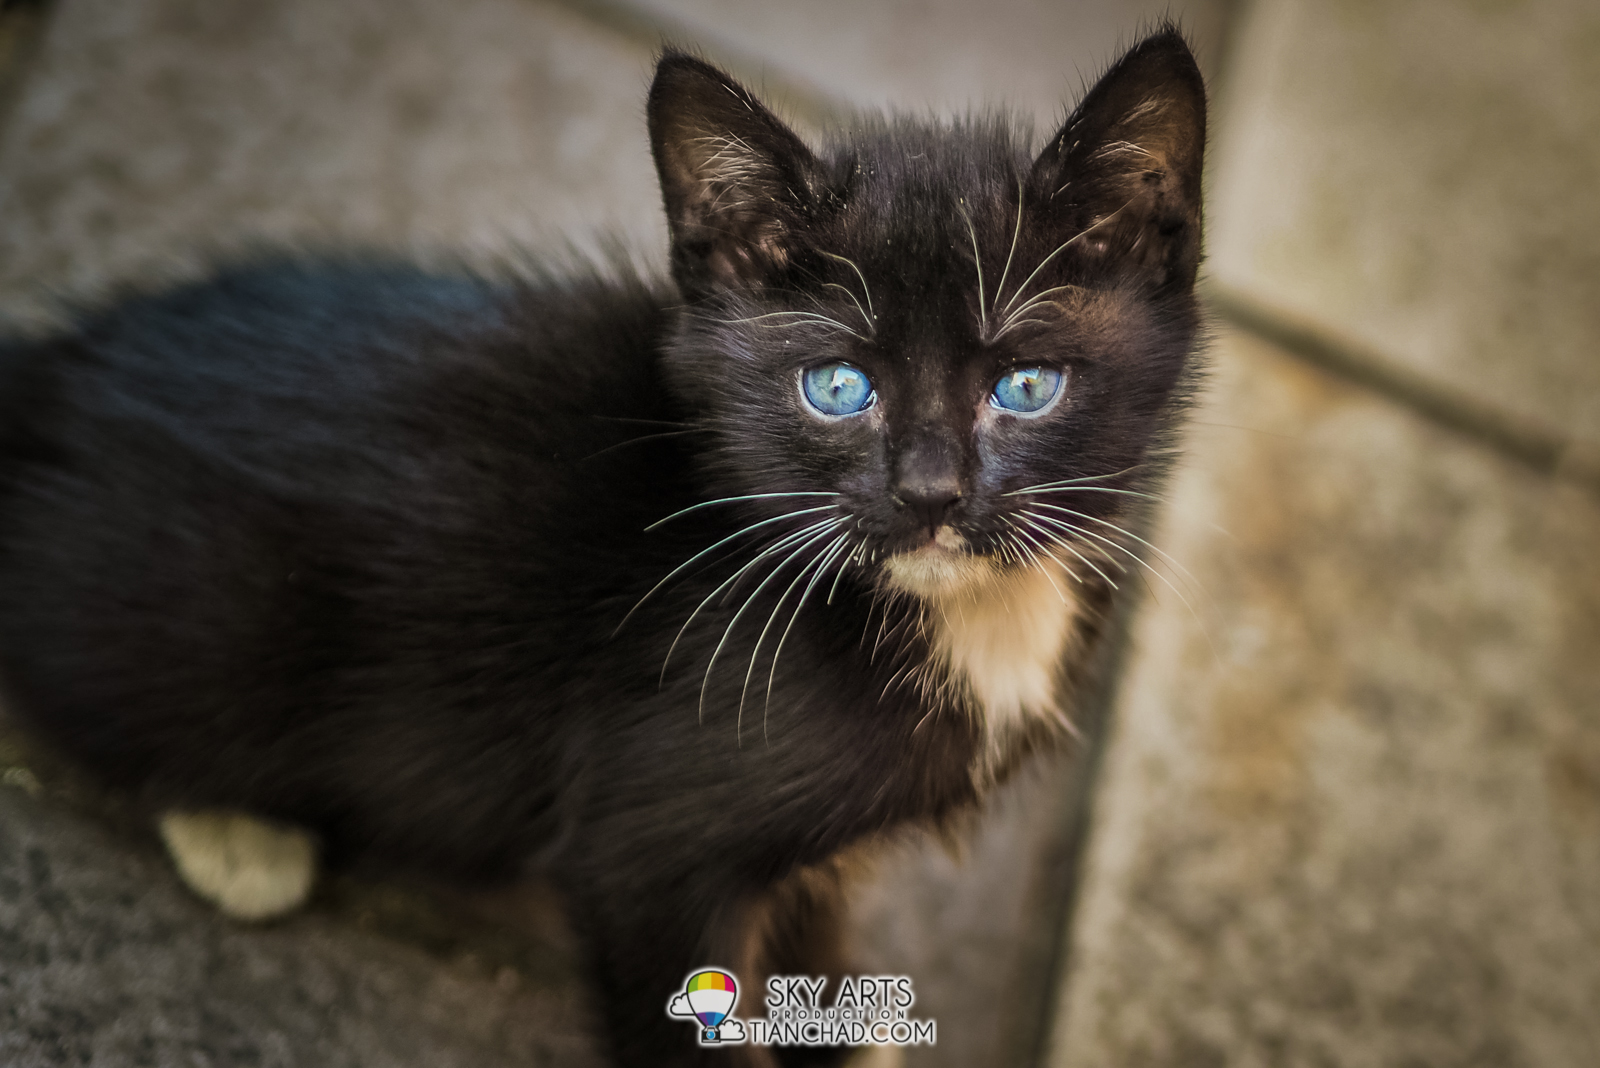 The Cat with Black Fur & Blue Eyes